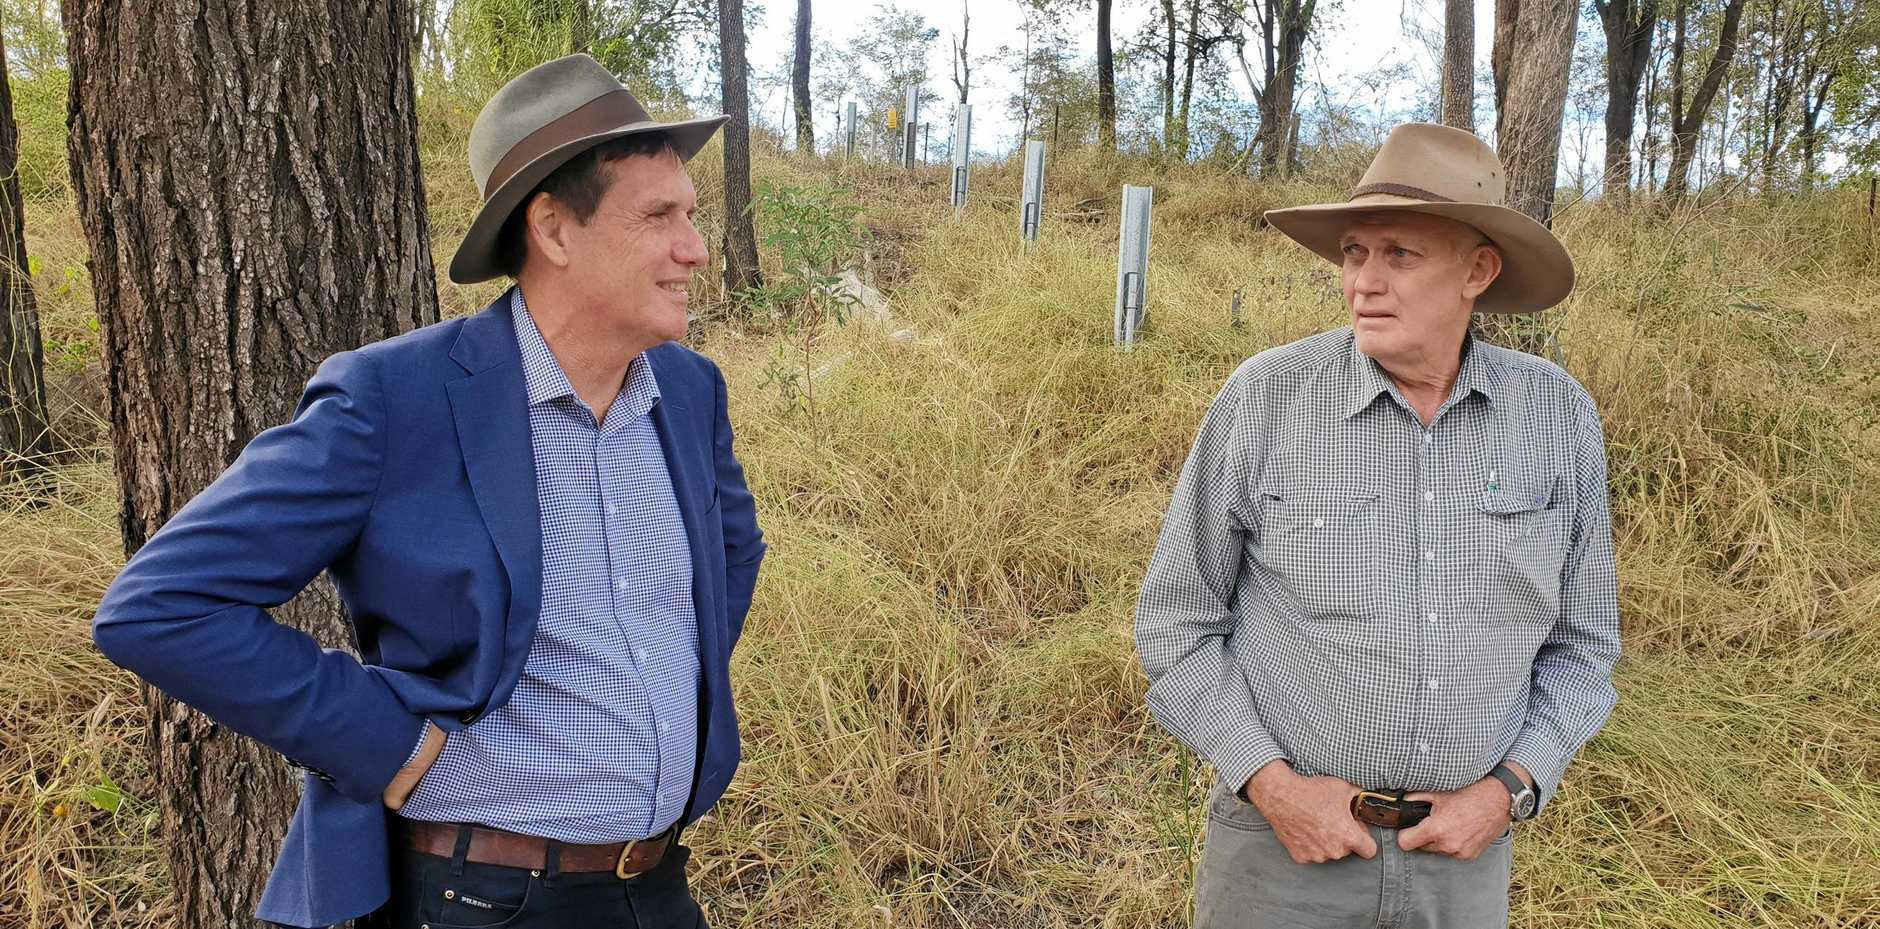 RIVER TALK: Minister for Natural Resources, Mines and Energy Anthony Lynham talks with CQ grazier Collin Dunn